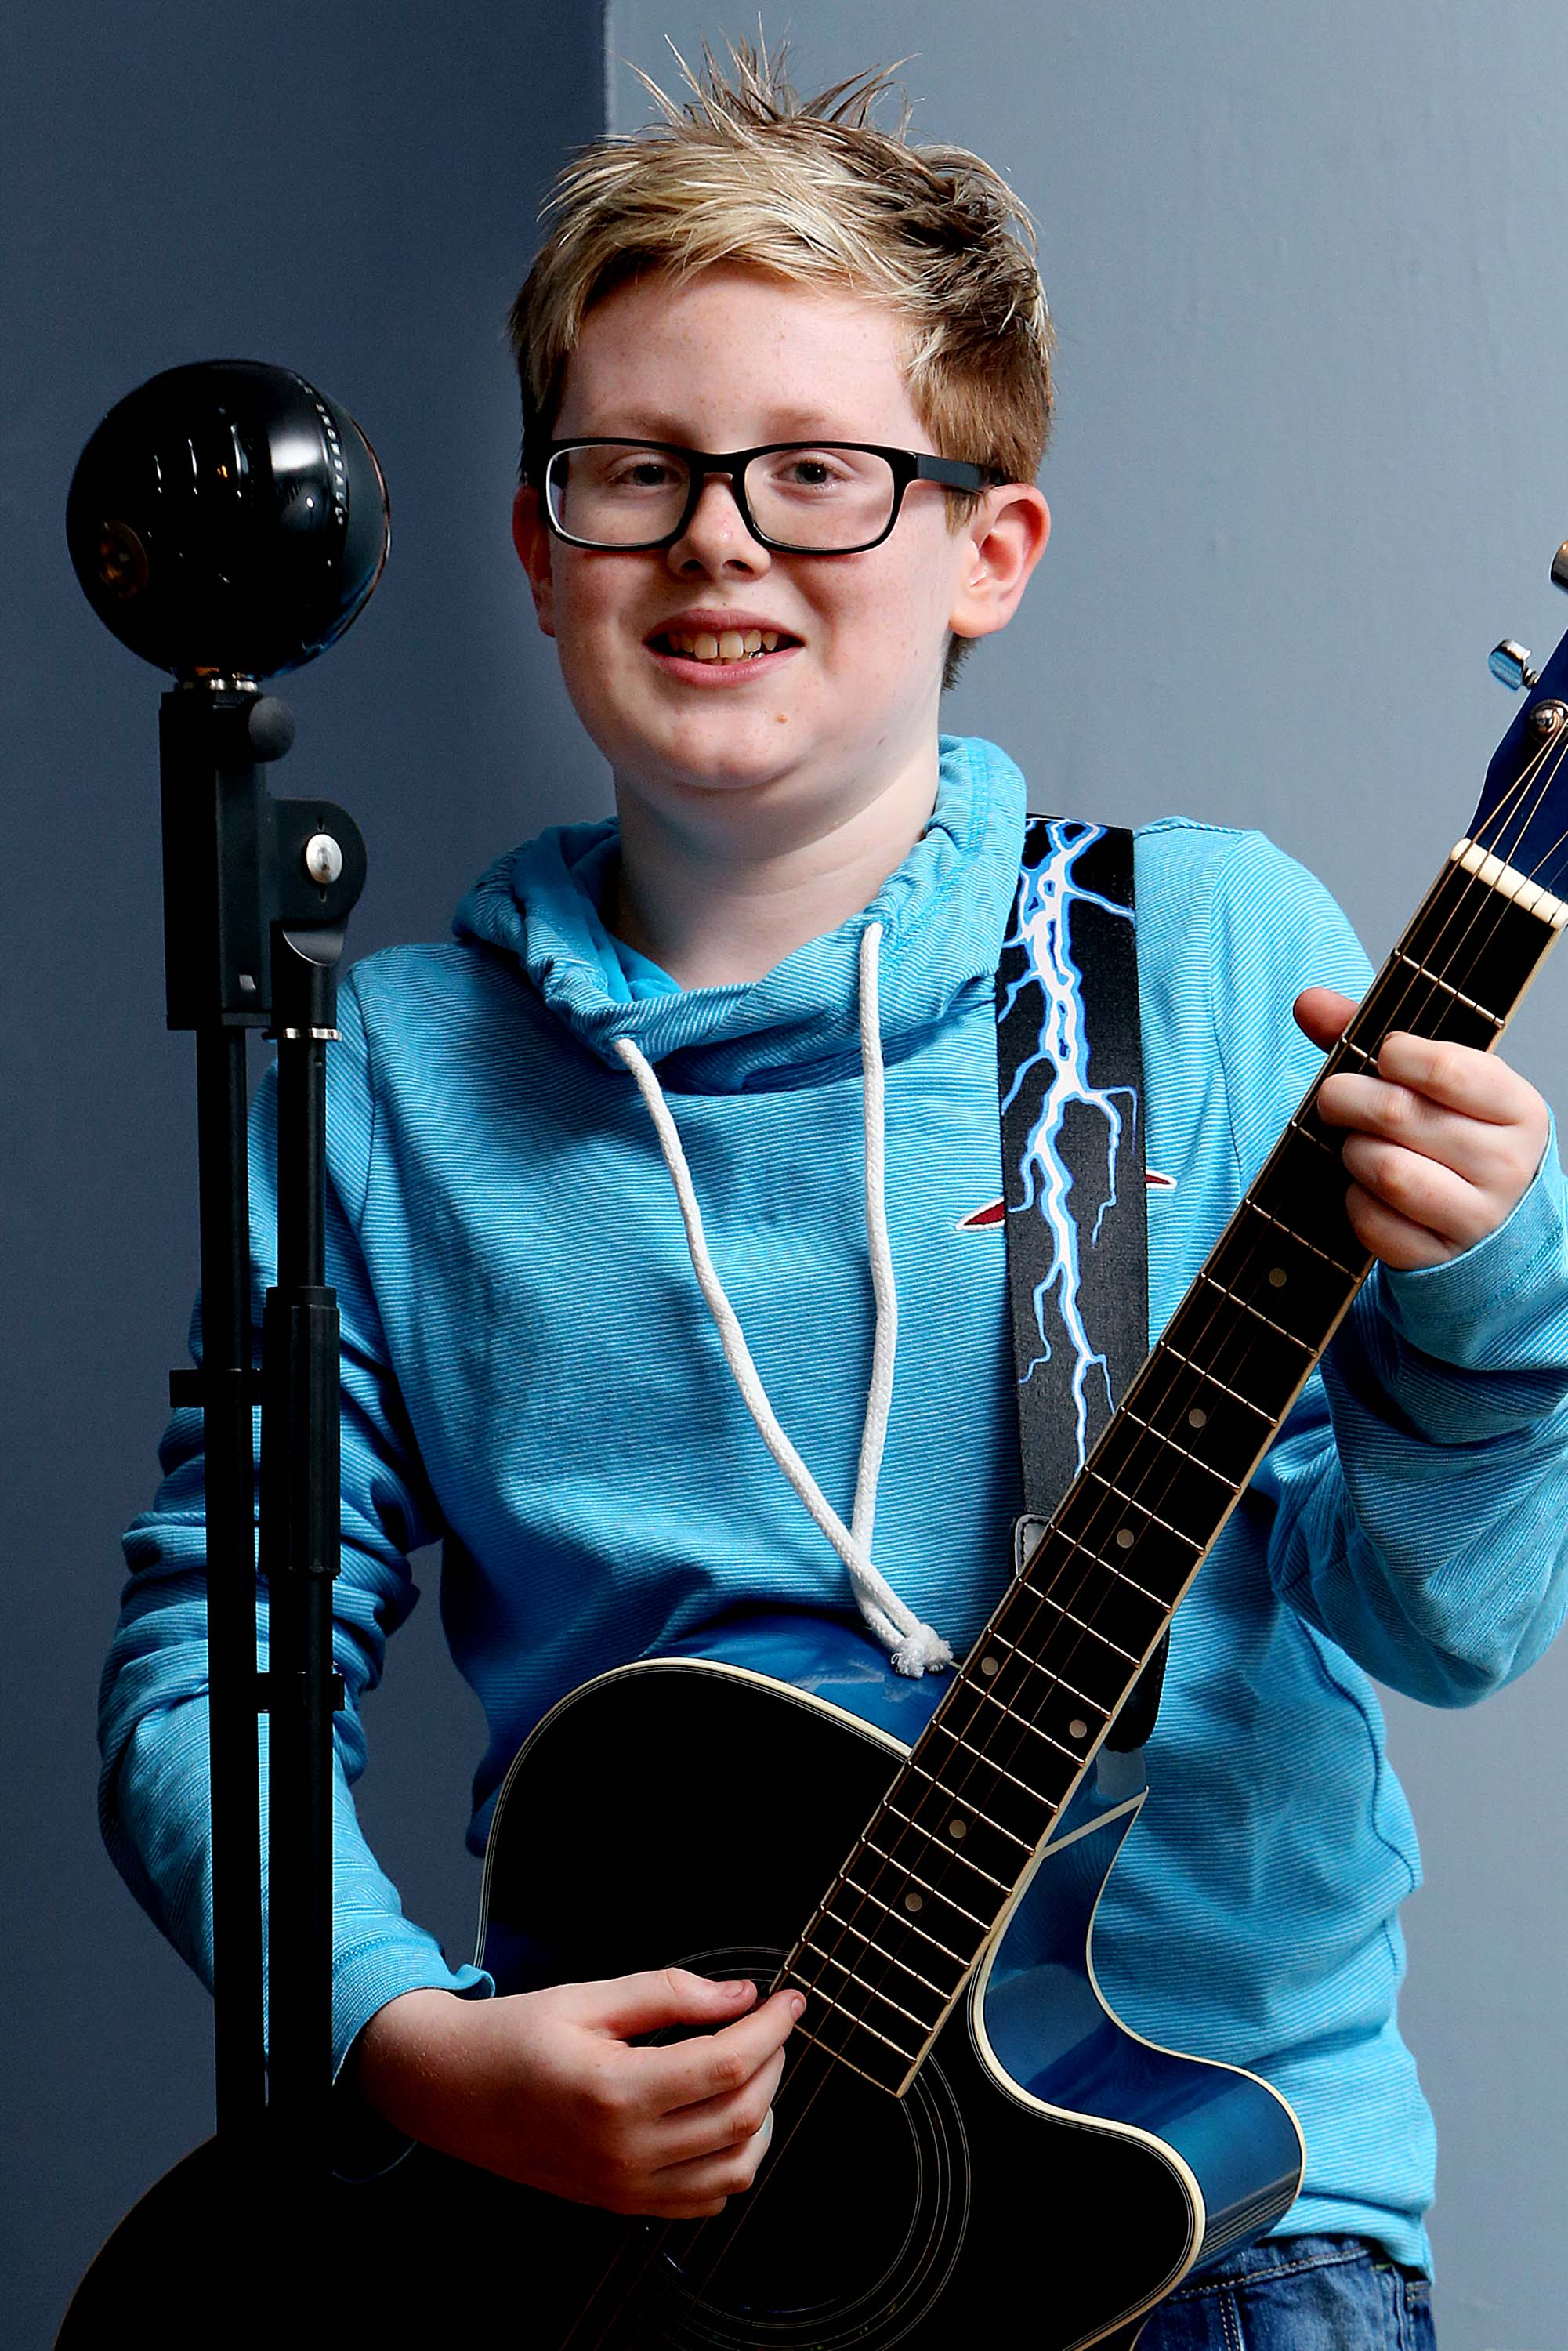 13 year old singer Ty Lewis who has made it through to the regional final of TeenStar.